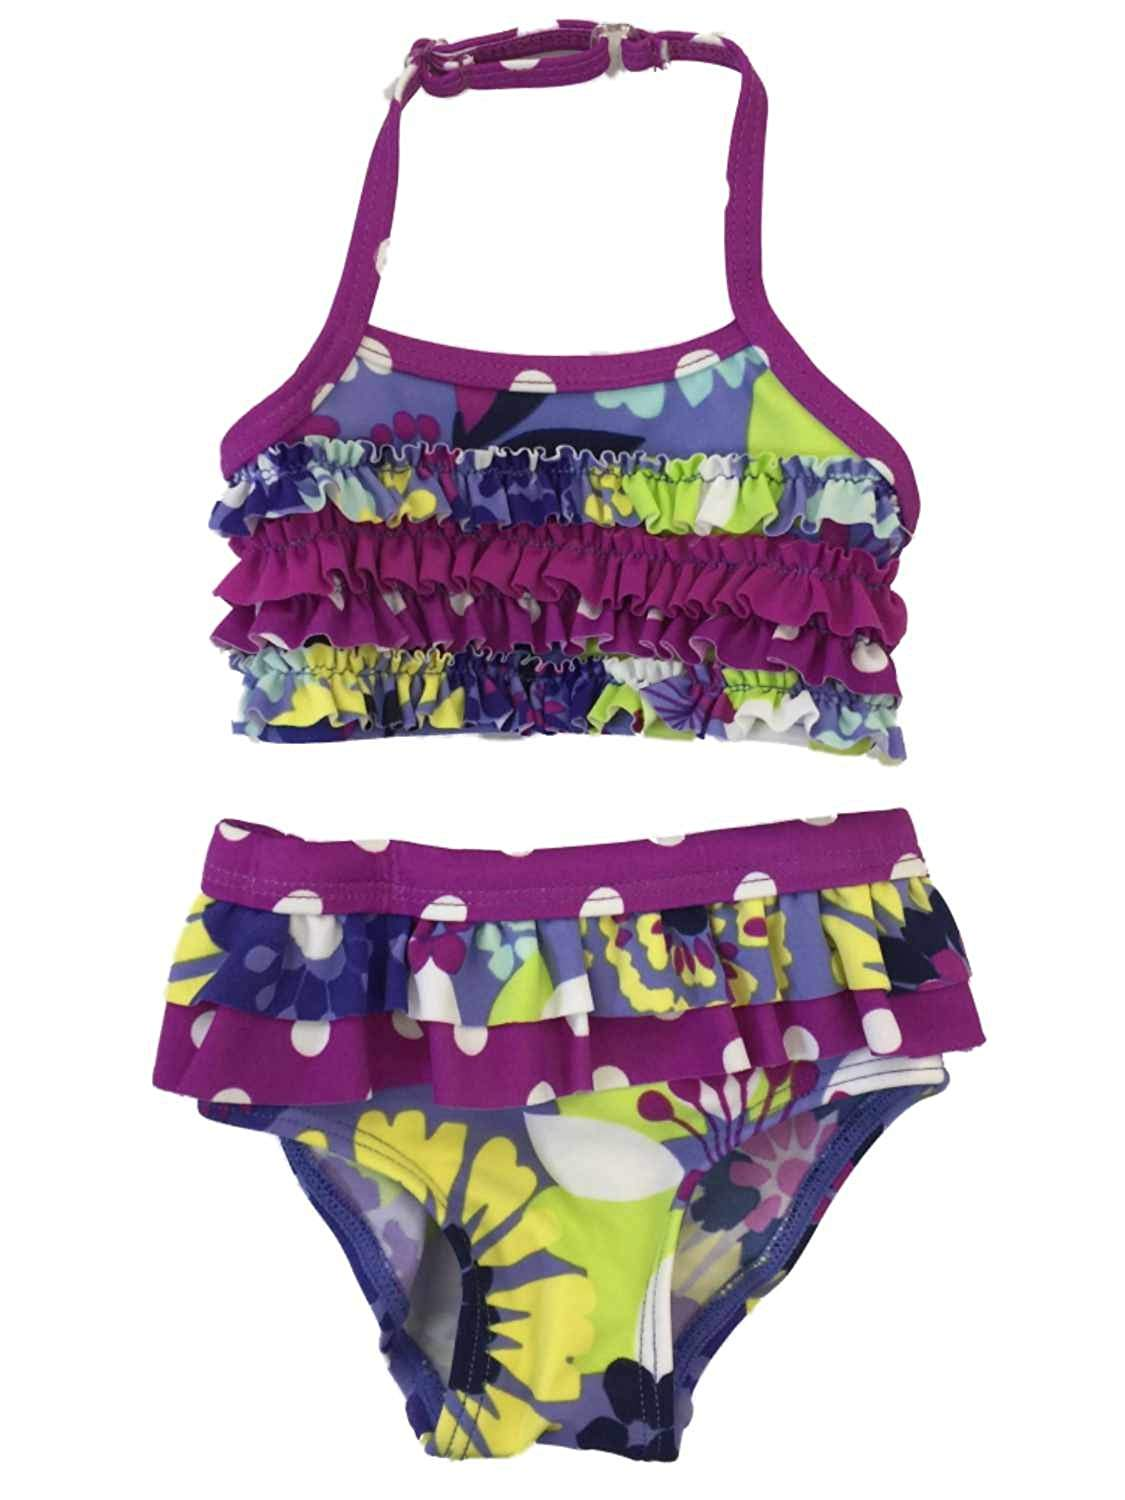 8e00005fb Get Quotations · KOALA Infant Girls Purple Floral Ruched 2 Piece Bikini  Swimming & Bathing Suit Newborn